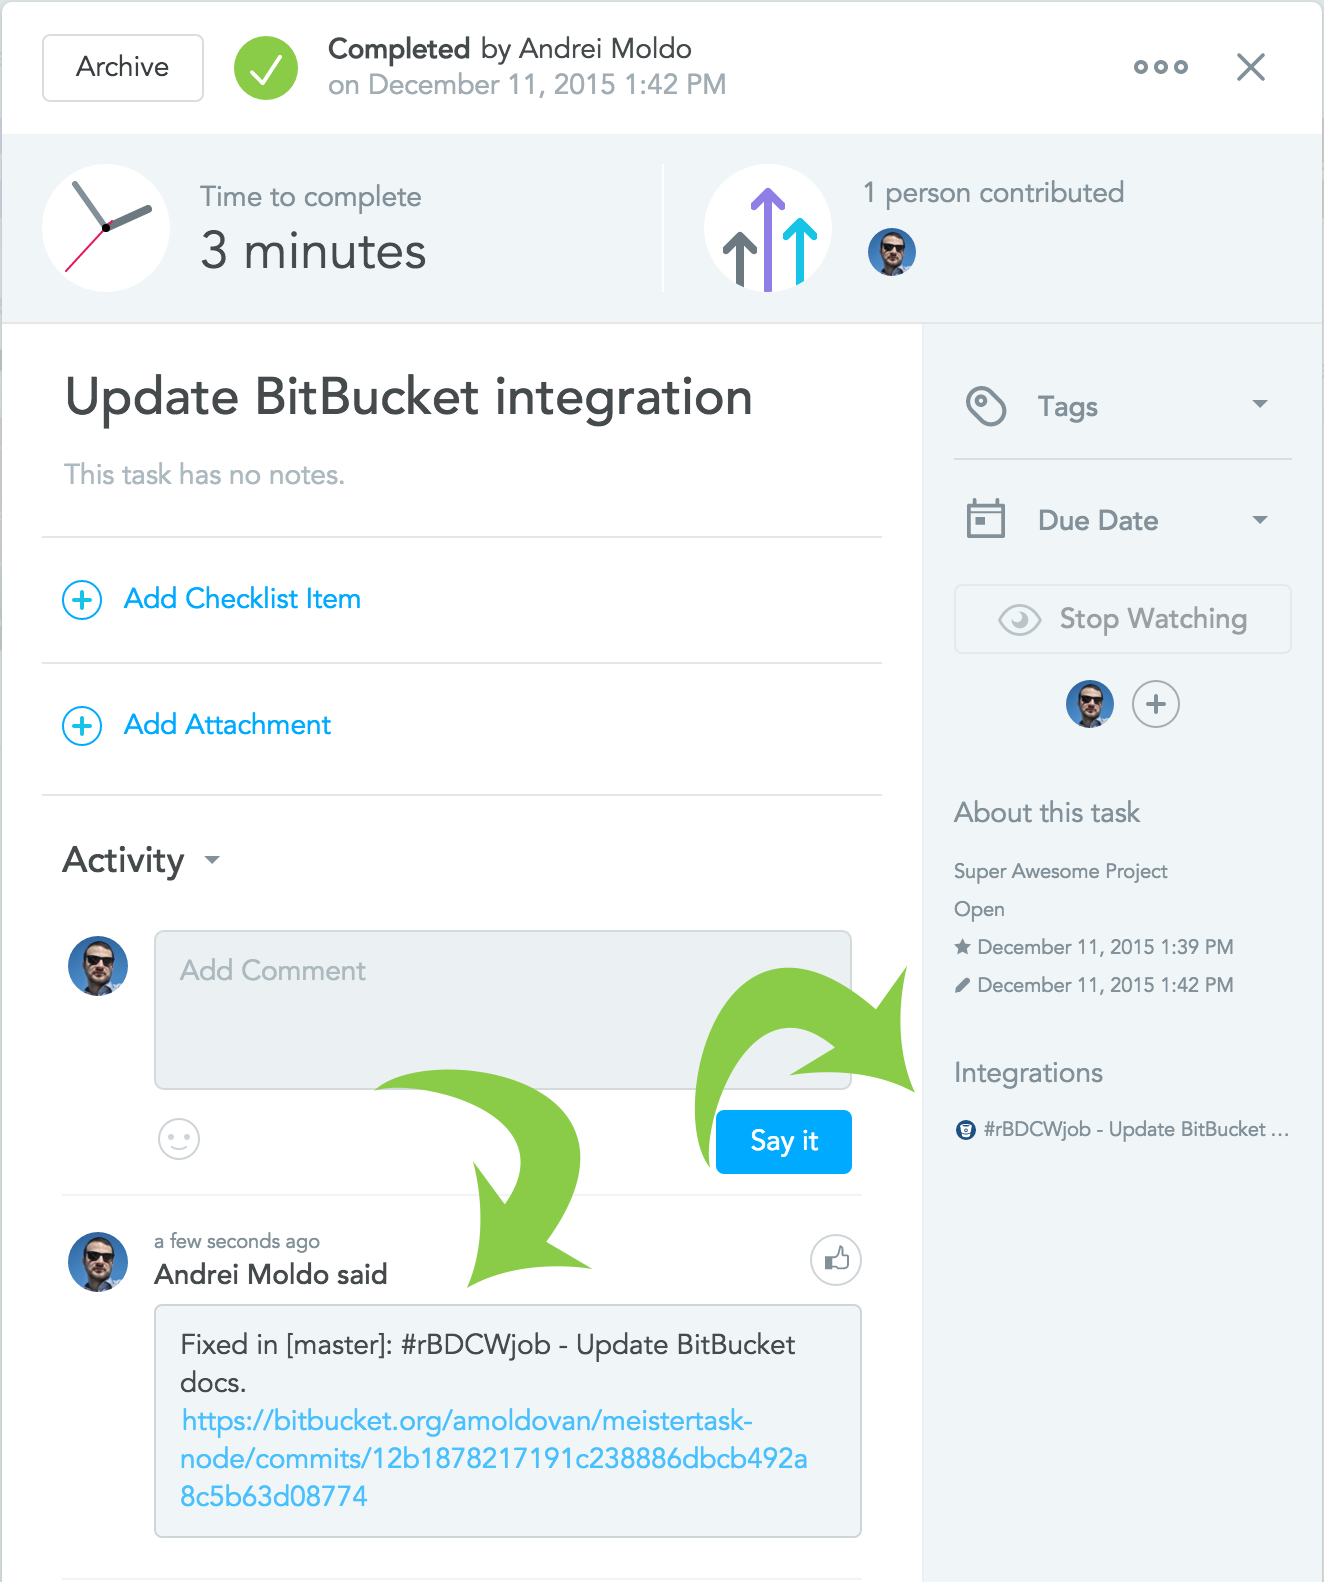 Completing a task via Bitbucket